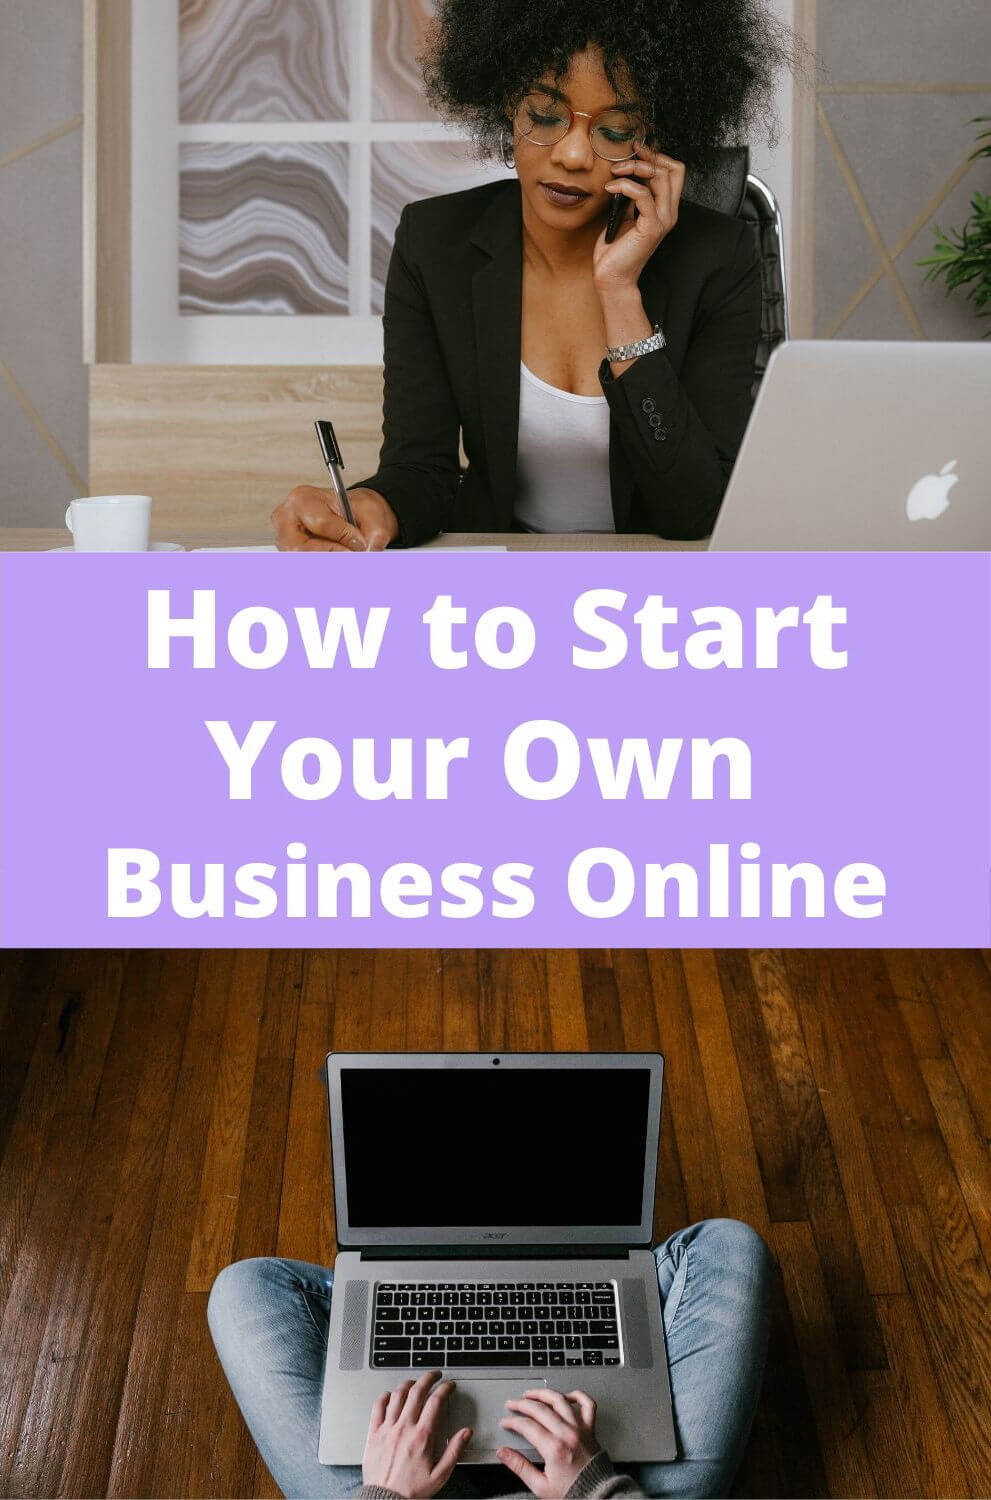 How to Start Your Onw Business Online